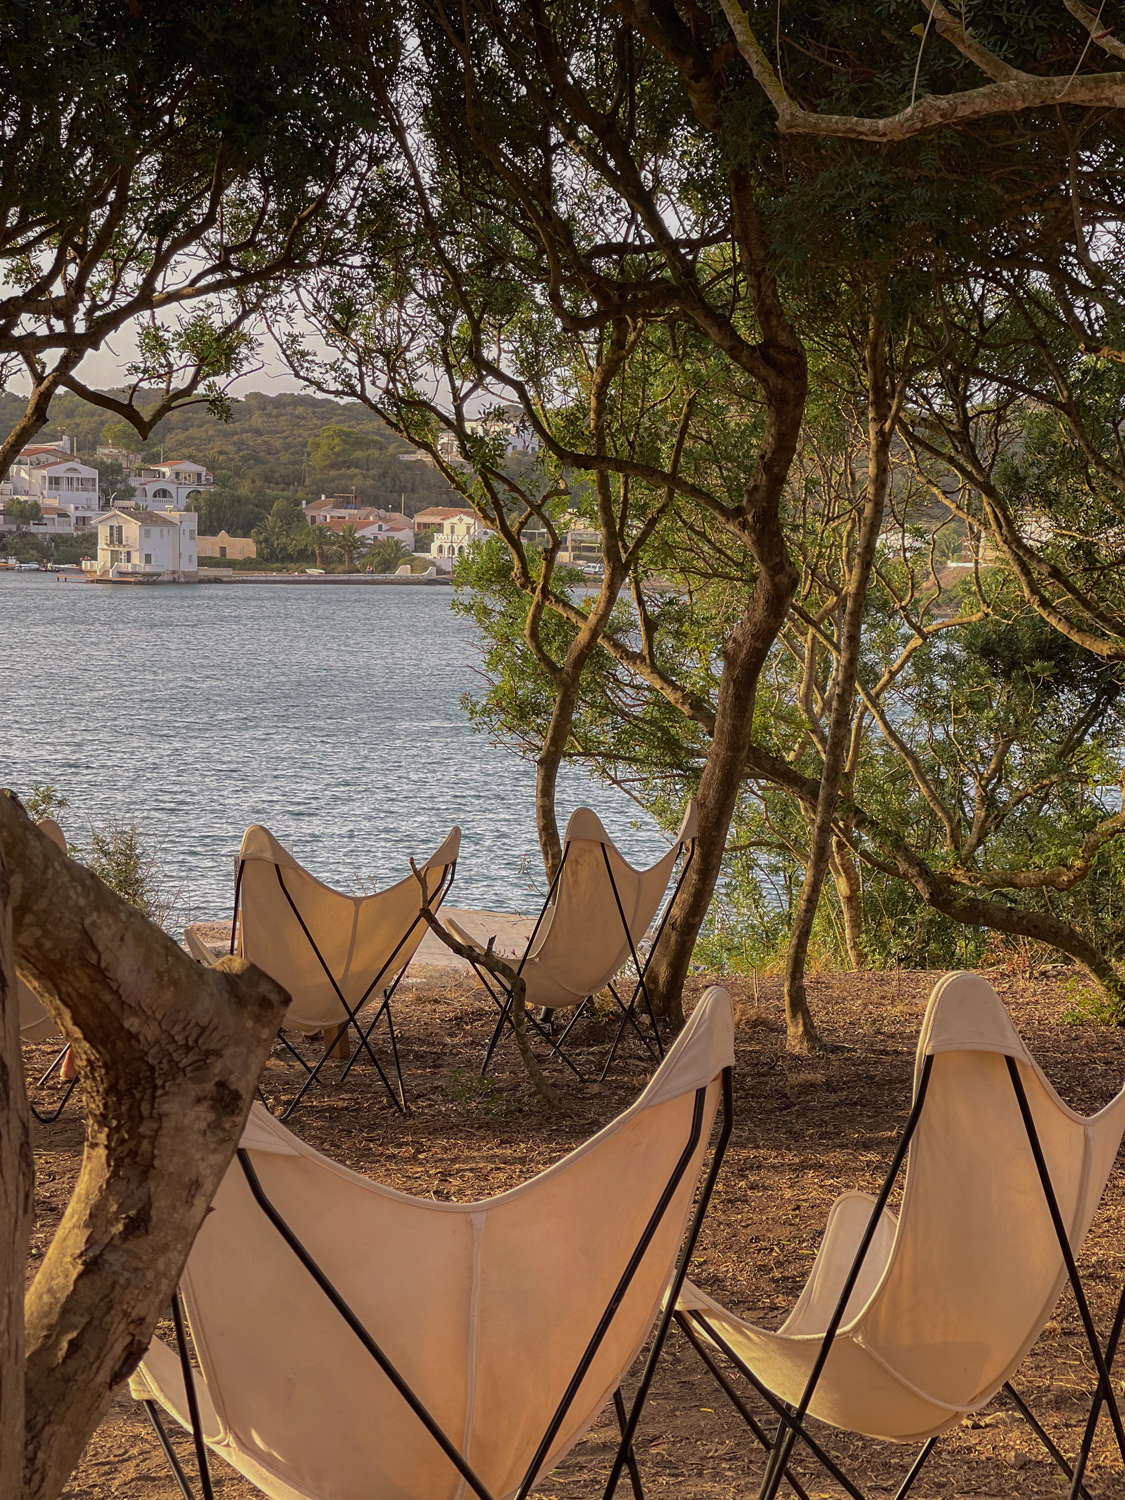 hauser-and-wirth-menorca-museo-lugares-slowkind-07